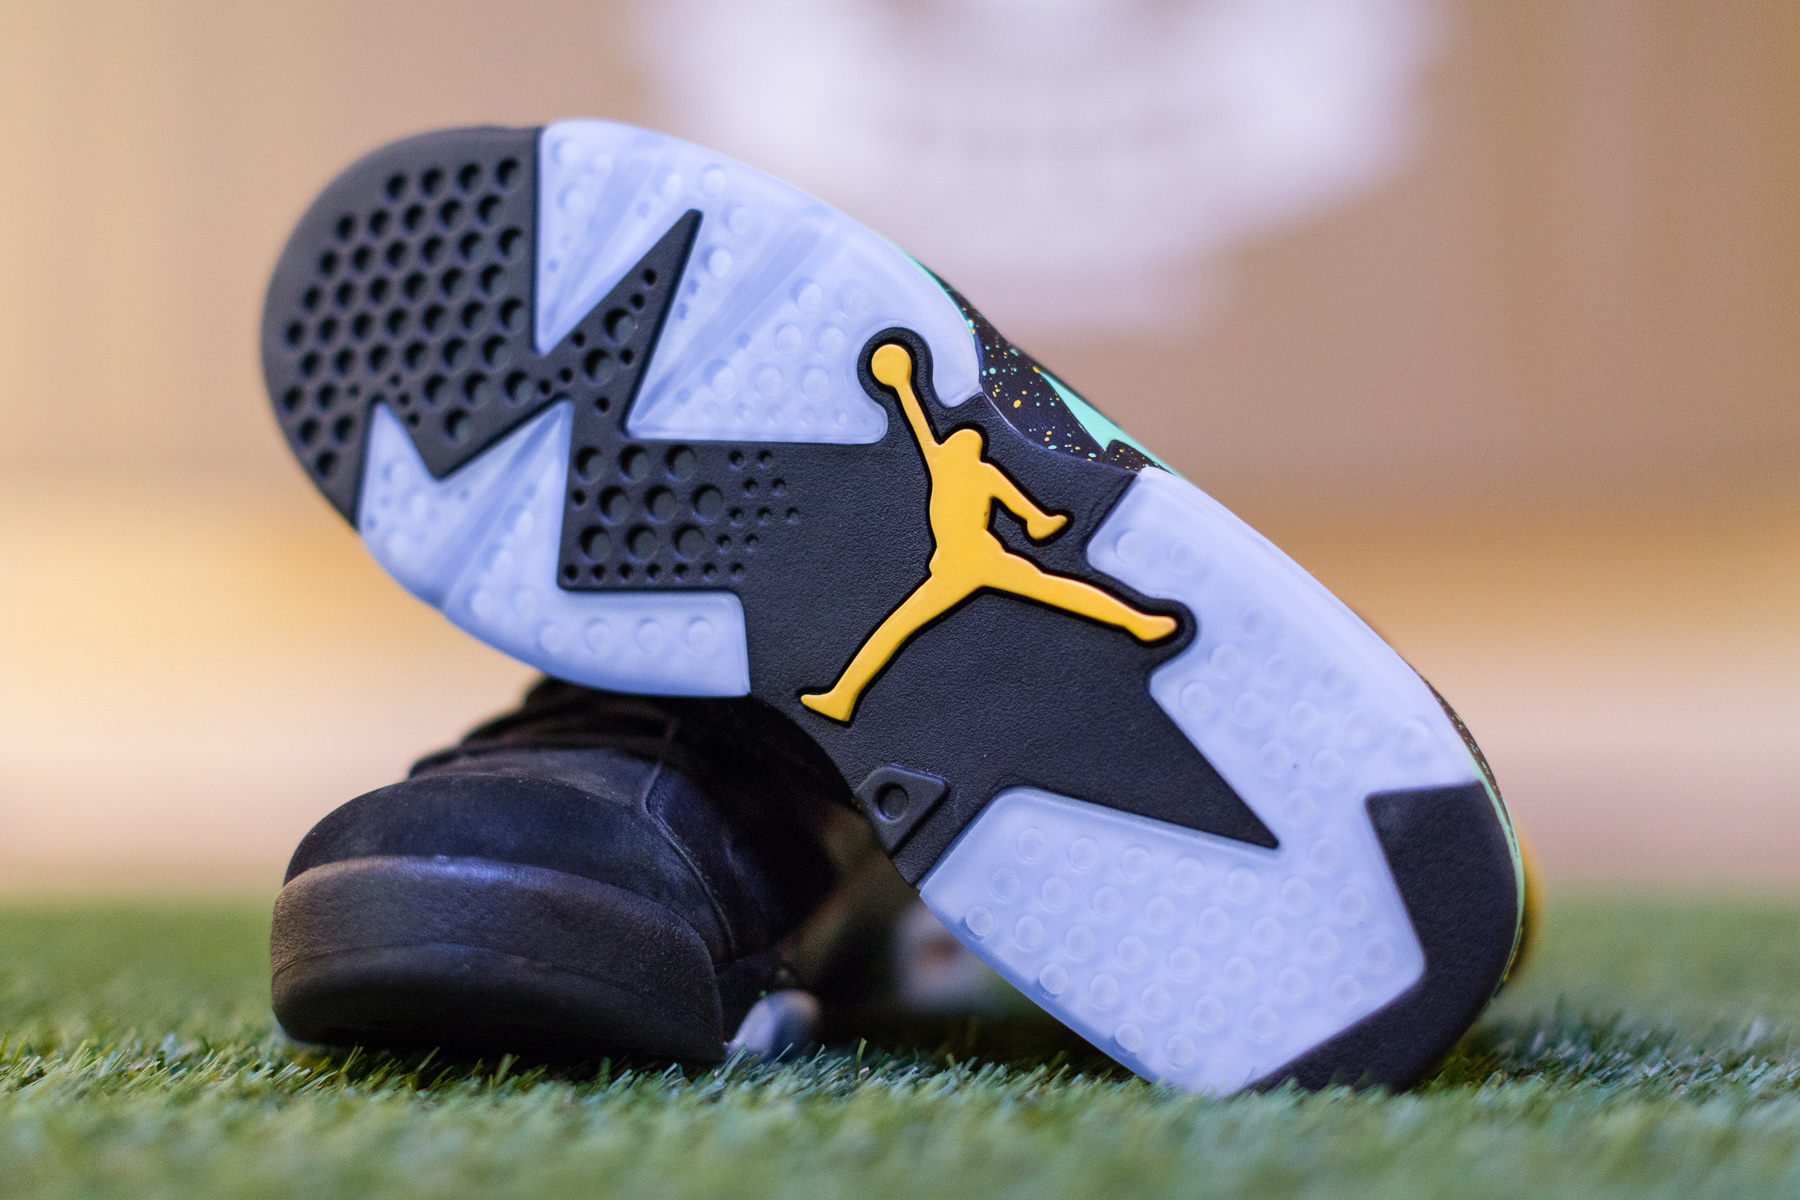 a closer look at the air jordan 6 retro world cup brazil